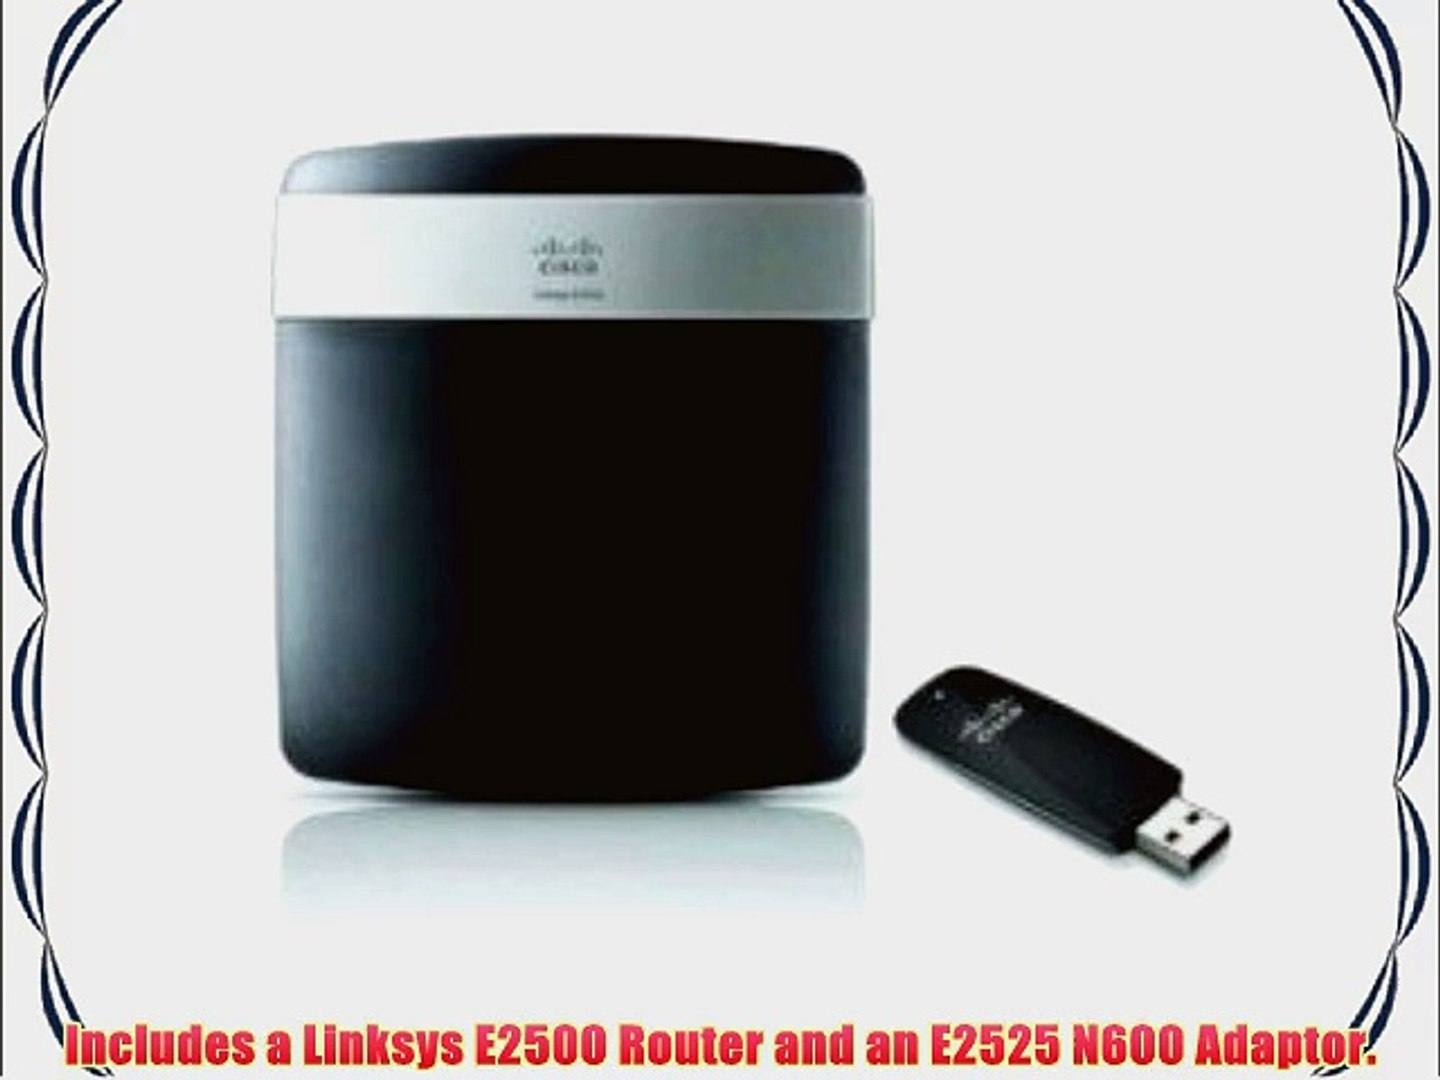 Linksys E2500 Advanced Simultaneous Dual-Band Wireless-N Router and N600  Dual Band Adaptor